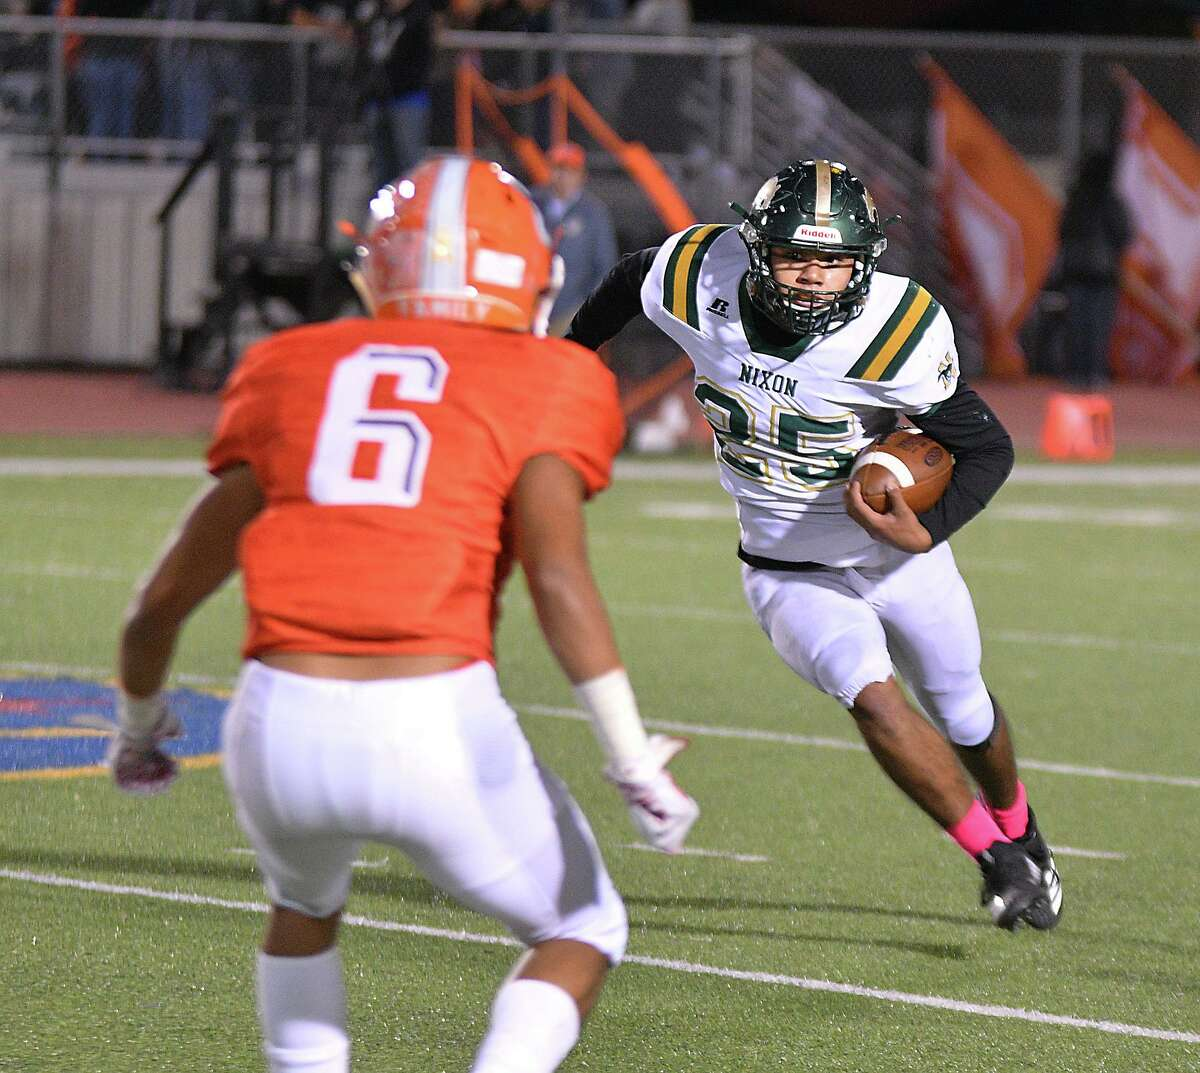 Pablo Tovar ran for 102 yards in Nixon's 45-14 loss to United on Friday.